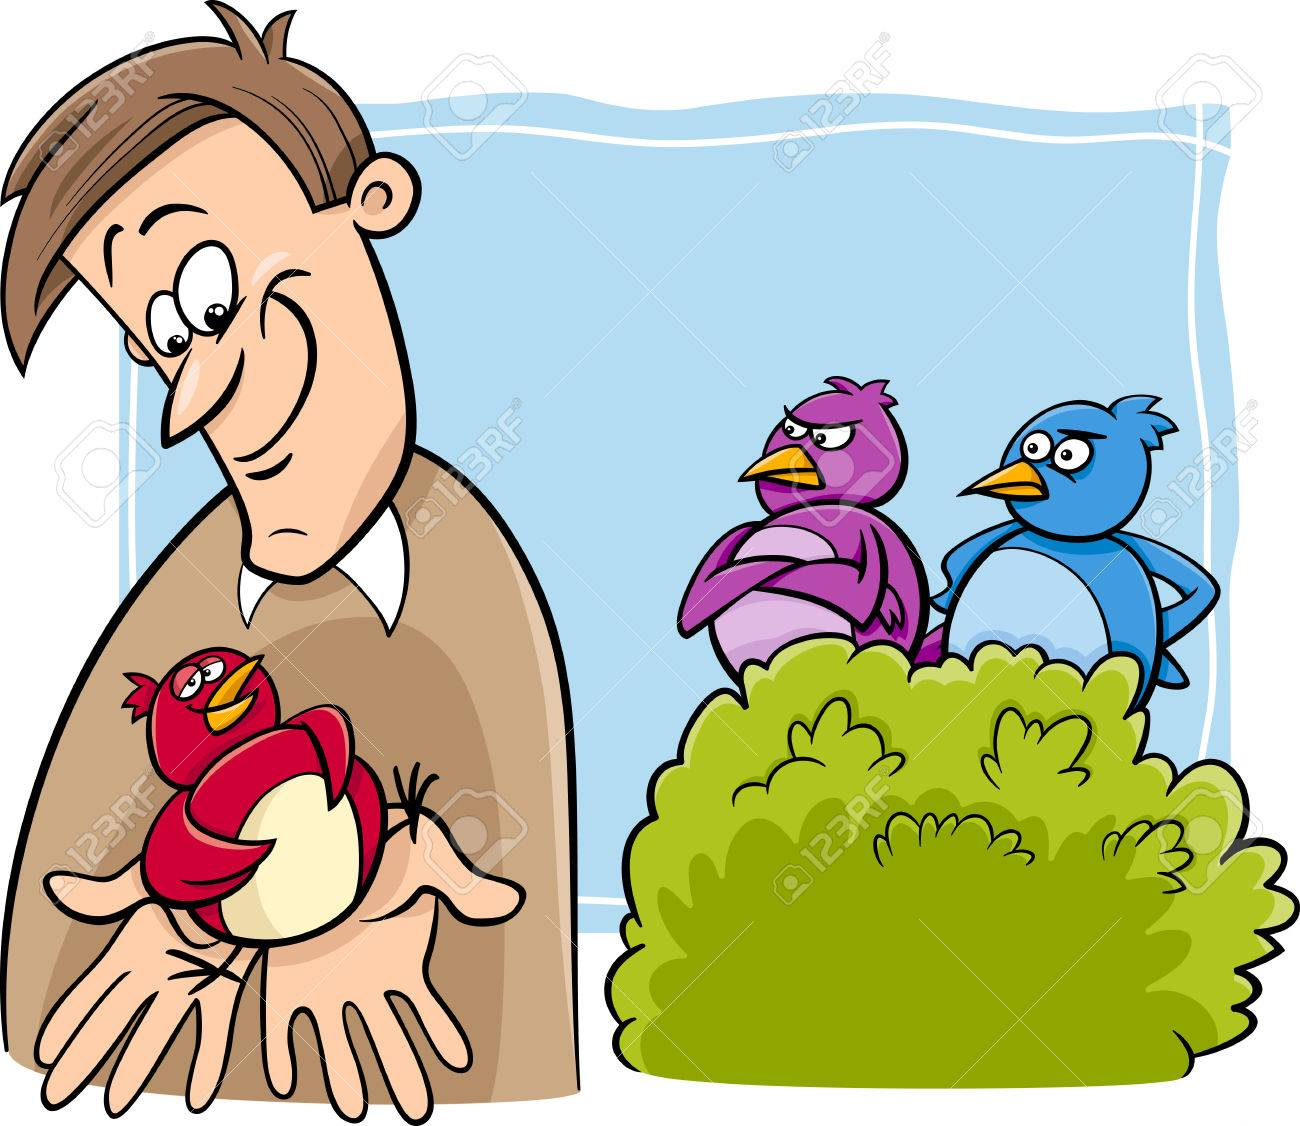 Cartoon Humor Concept Illustration of A Bird in the Hand is Worth Two in the Bush Saying or Proverb - 33123391